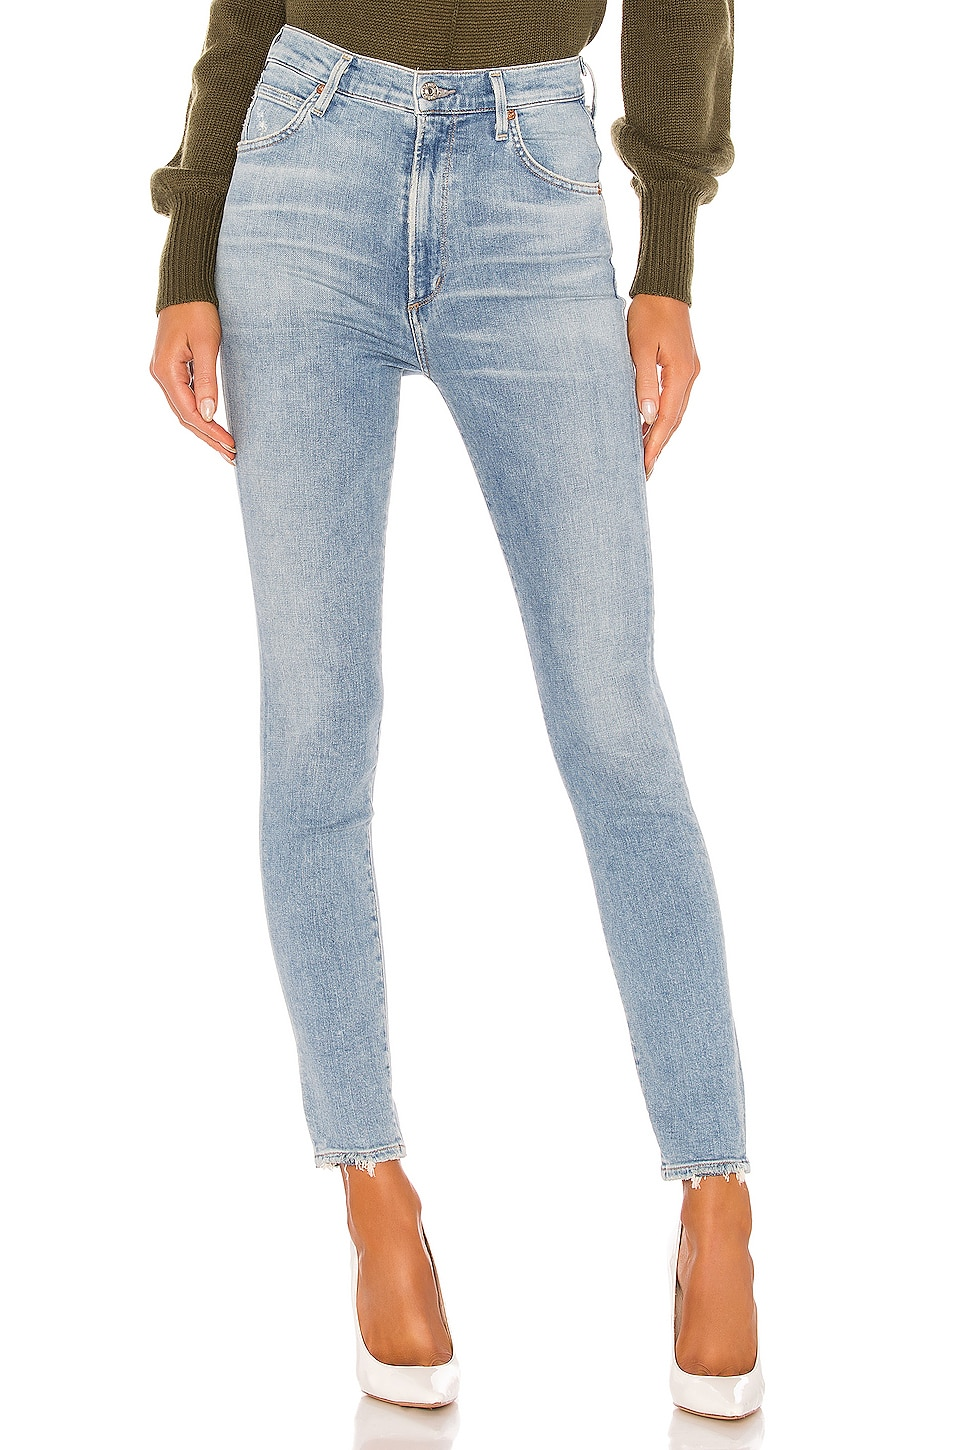 Chrissy Sculpt High Rise Skinny             Citizens of Humanity                                                                                                       CA$ 309.96 2